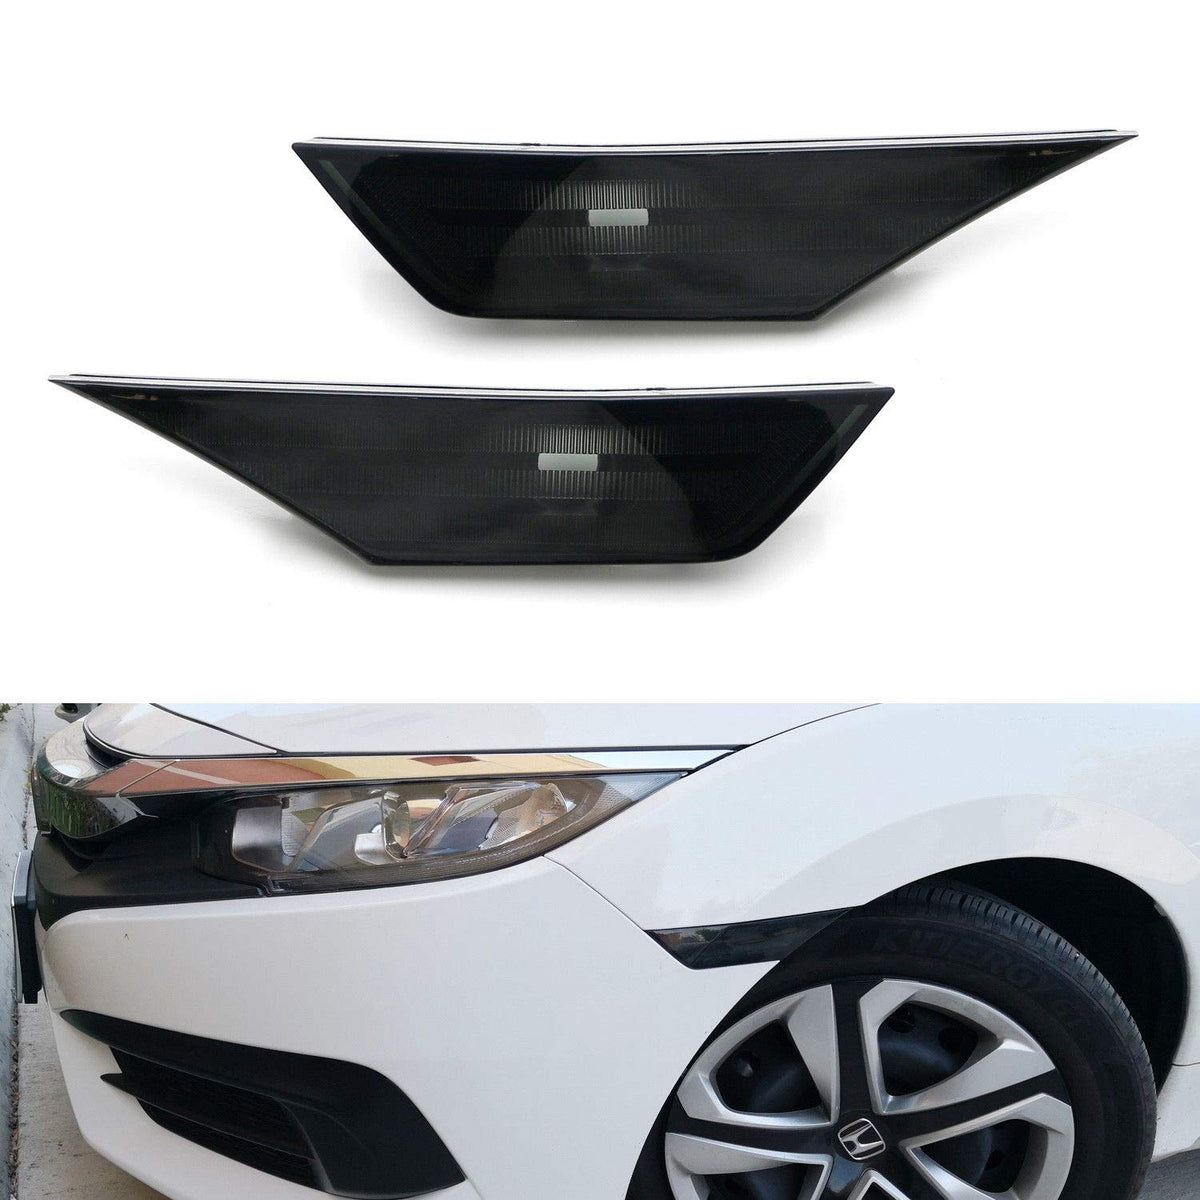 OE-Spec LH RH Assembly iJDMTOY Smoked Lens Rear Bumper Reflector Lenses For 2016-up Honda Civic Sedan//Coupe 10th Gen